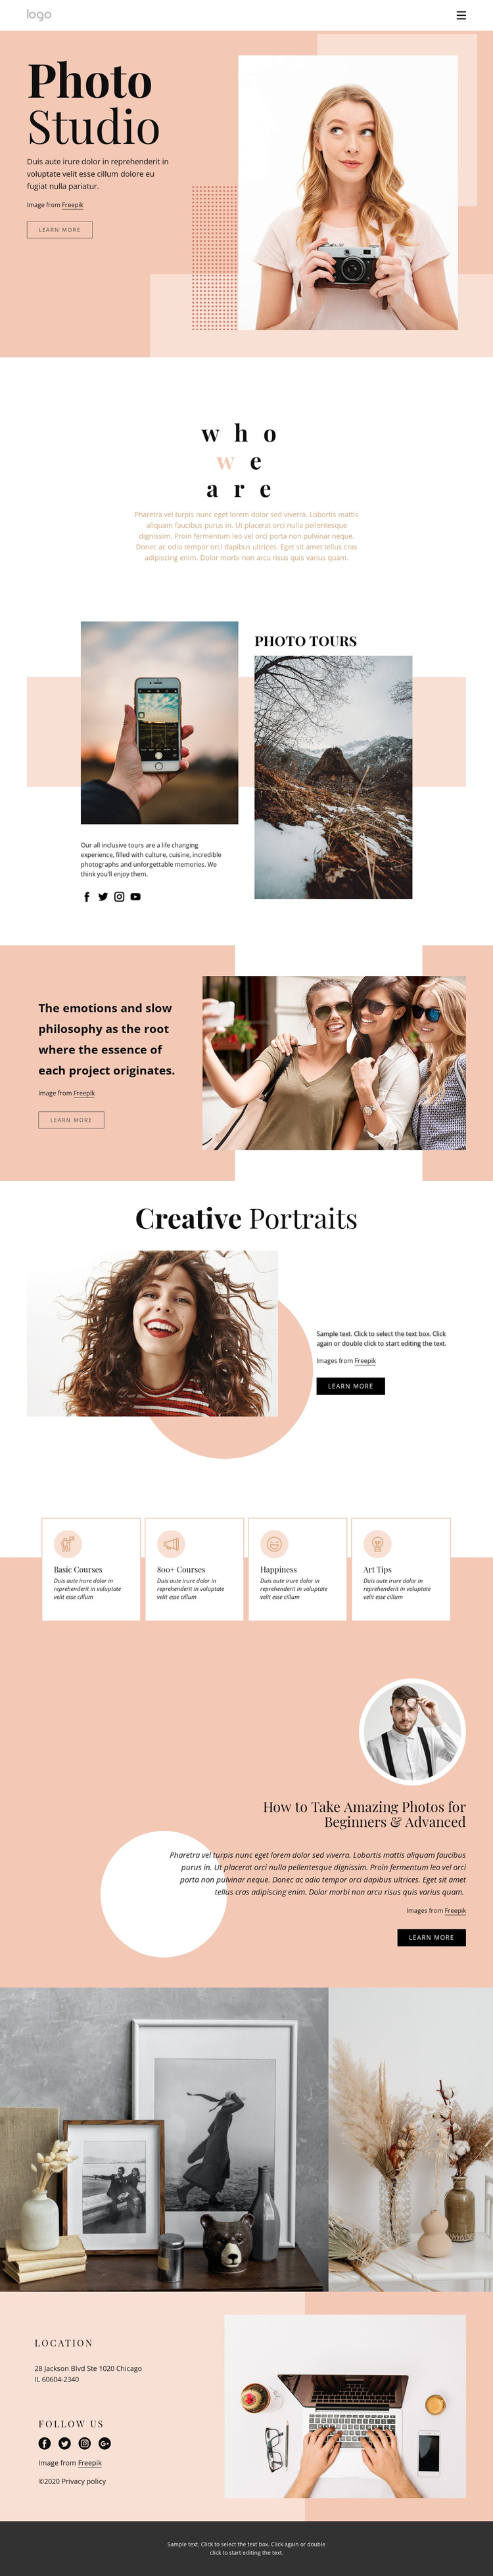 Photography courses Website Builder Software